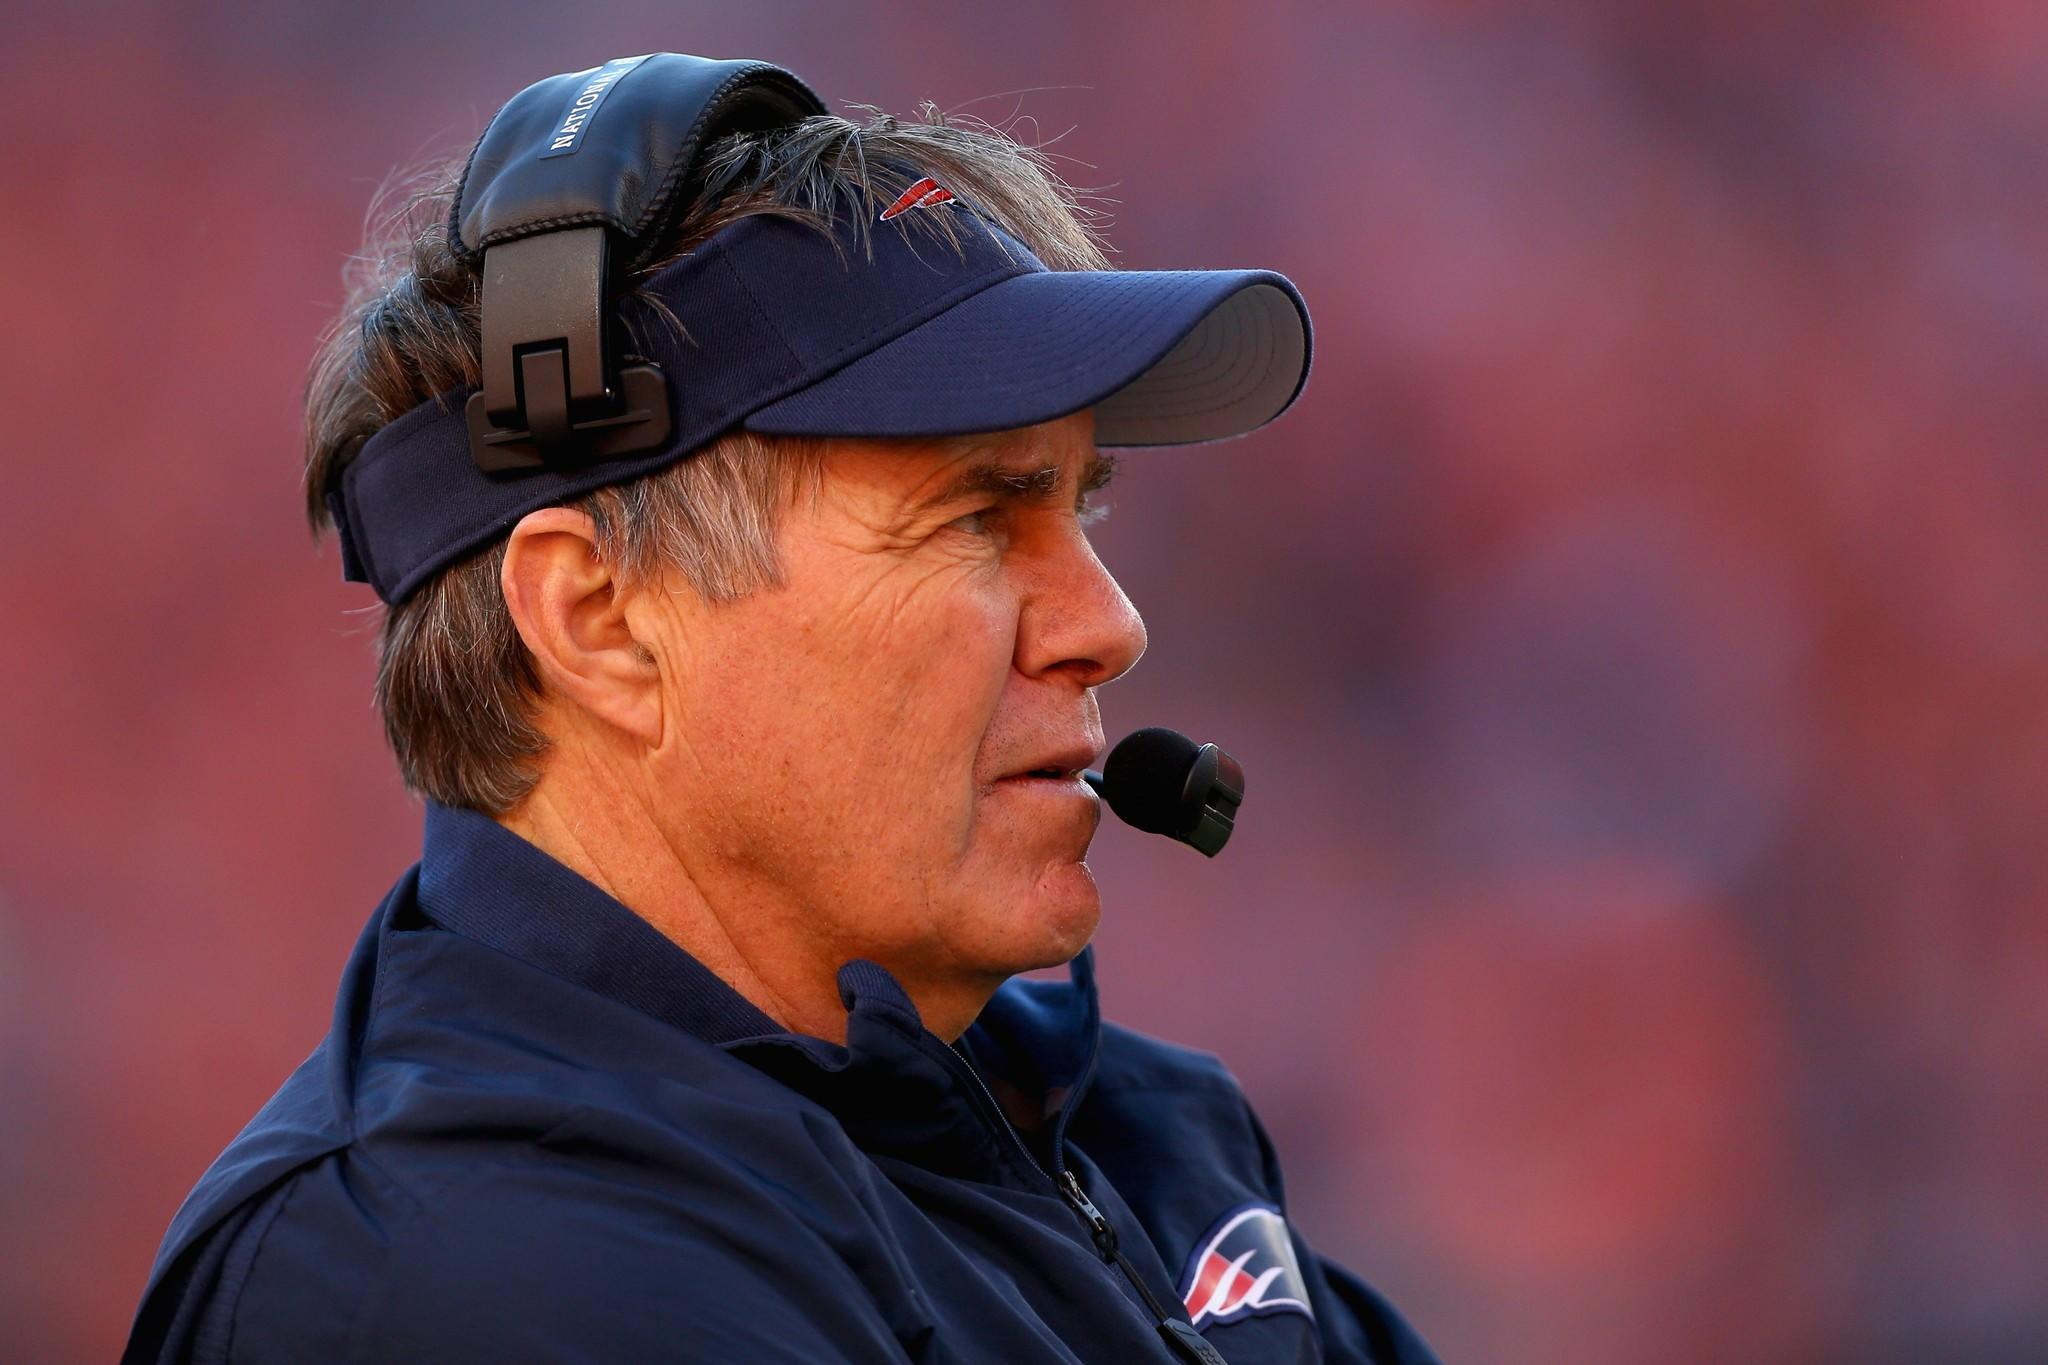 Head coach Bill Belichick of the New England Patriots looks on against the Denver Broncos during the AFC Championship game.